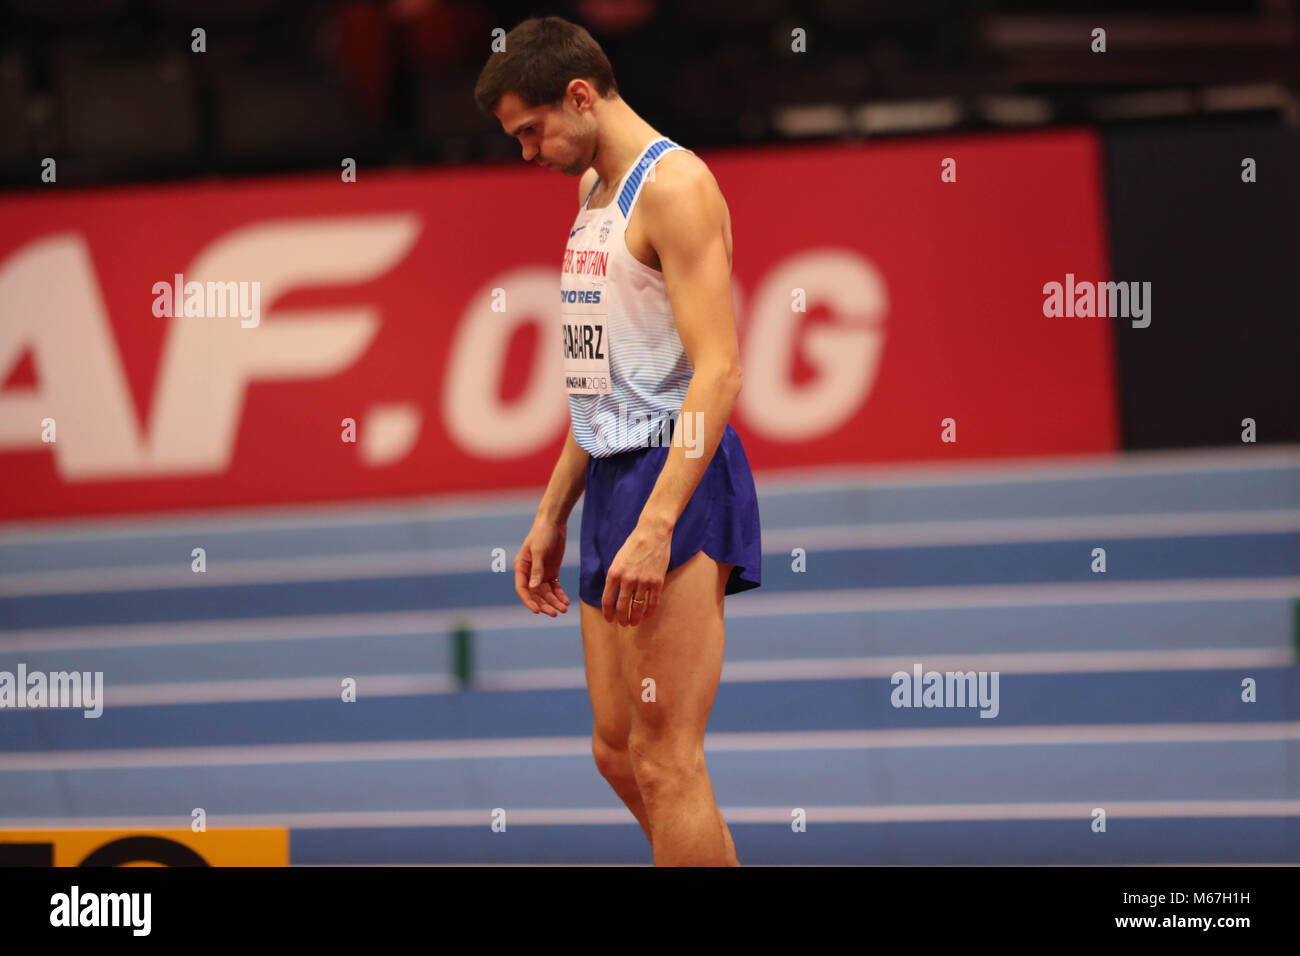 Birmingham, UK. 1st March, 2018. Robbie GRABARZ (GREAT BRITAIN)  concentrates before his jump during the mens high - Stock Image